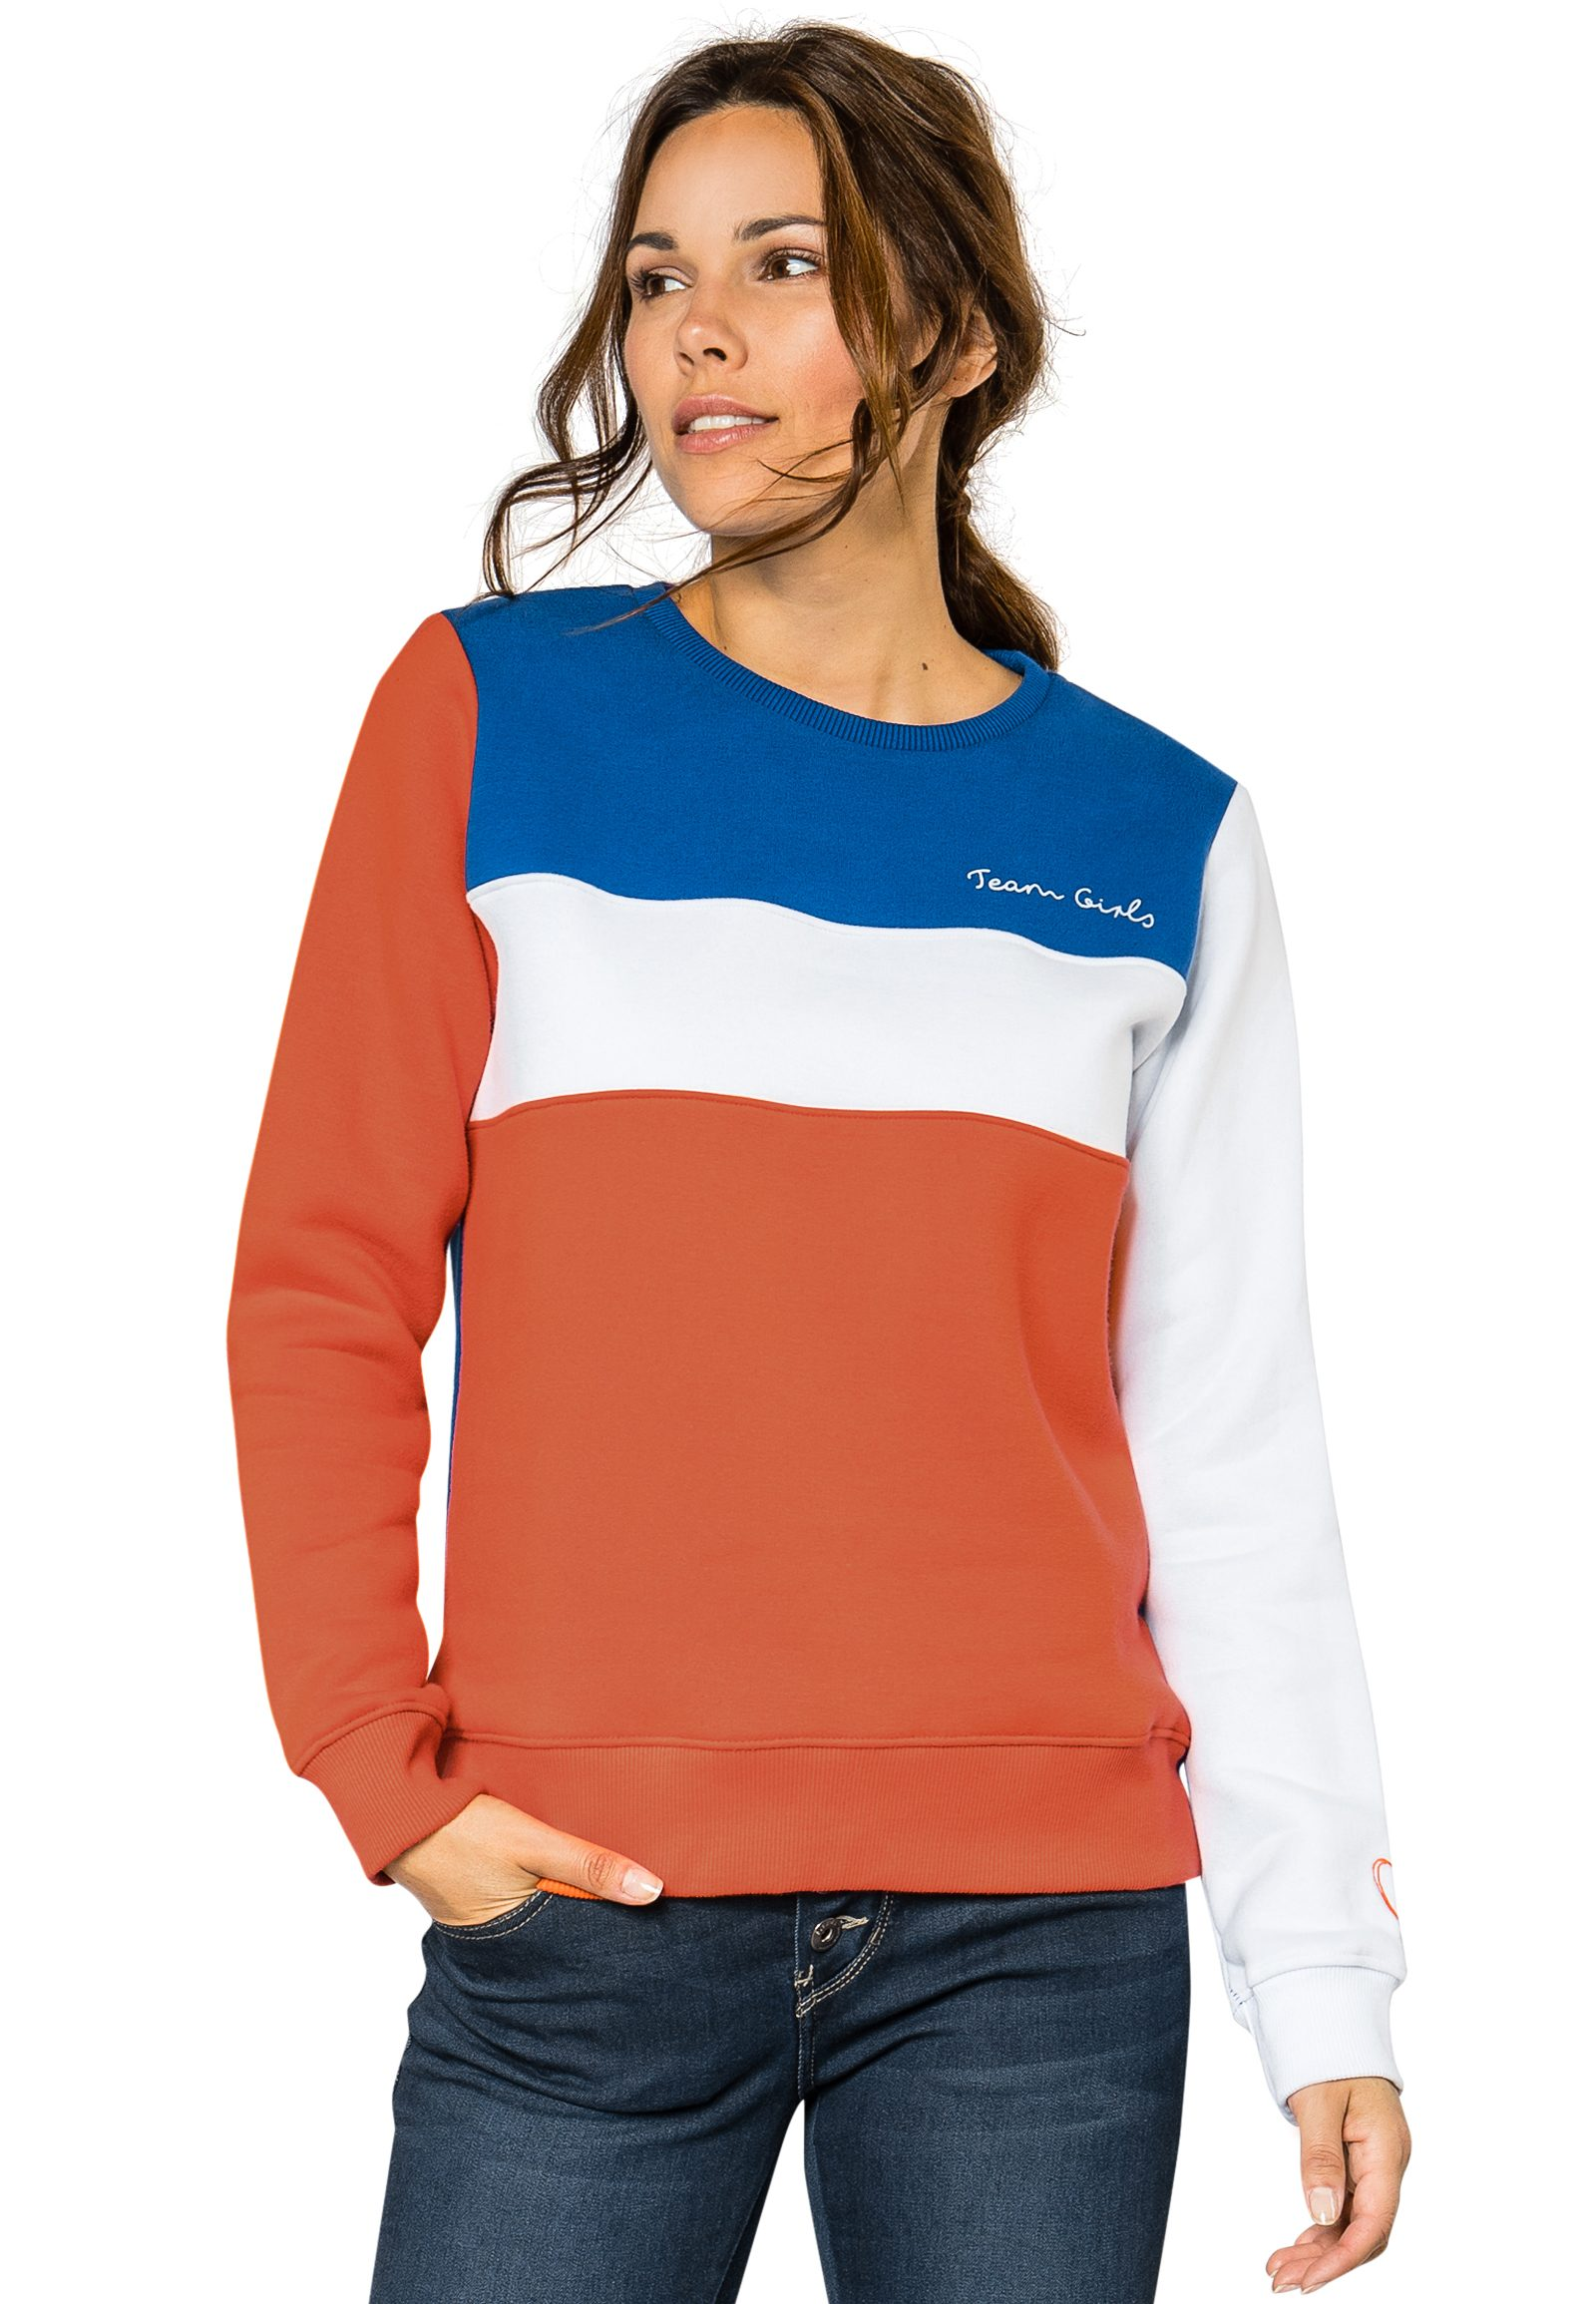 Vorschau: Colourblock Sweatshirt